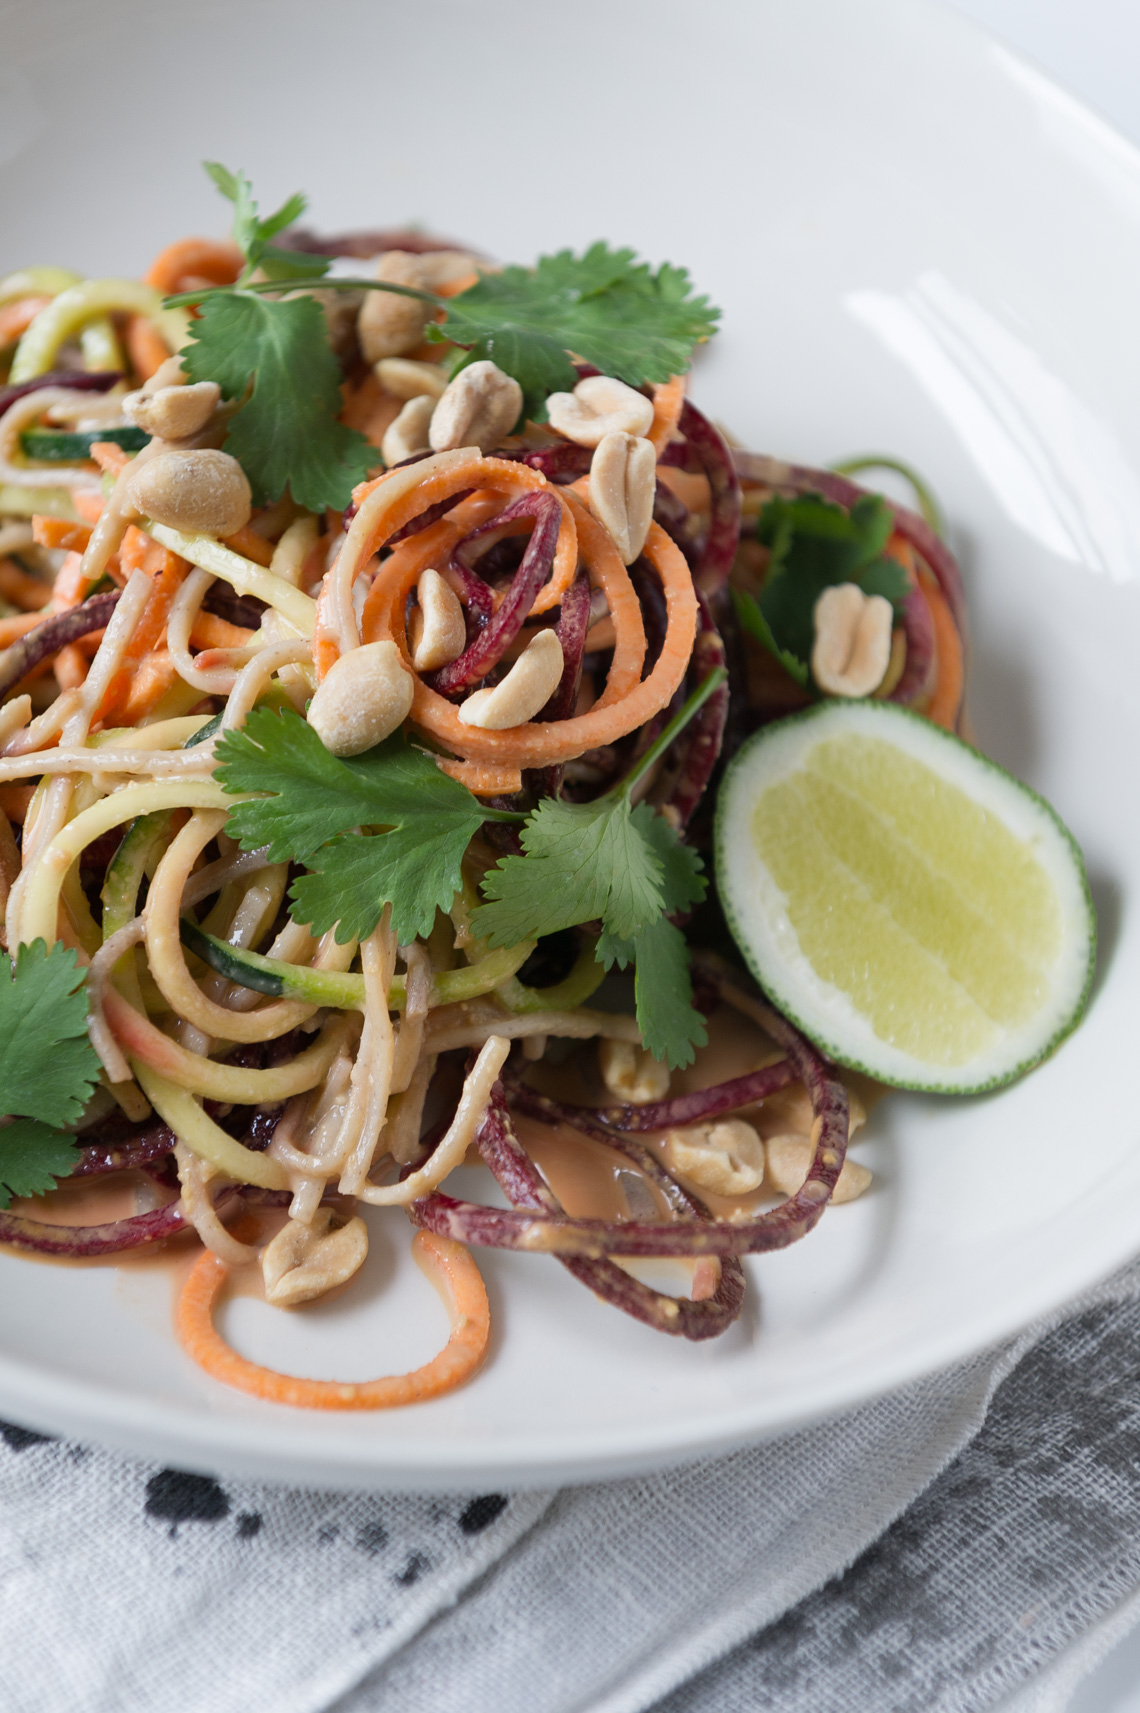 NYC Food Photographer - Thai Salad